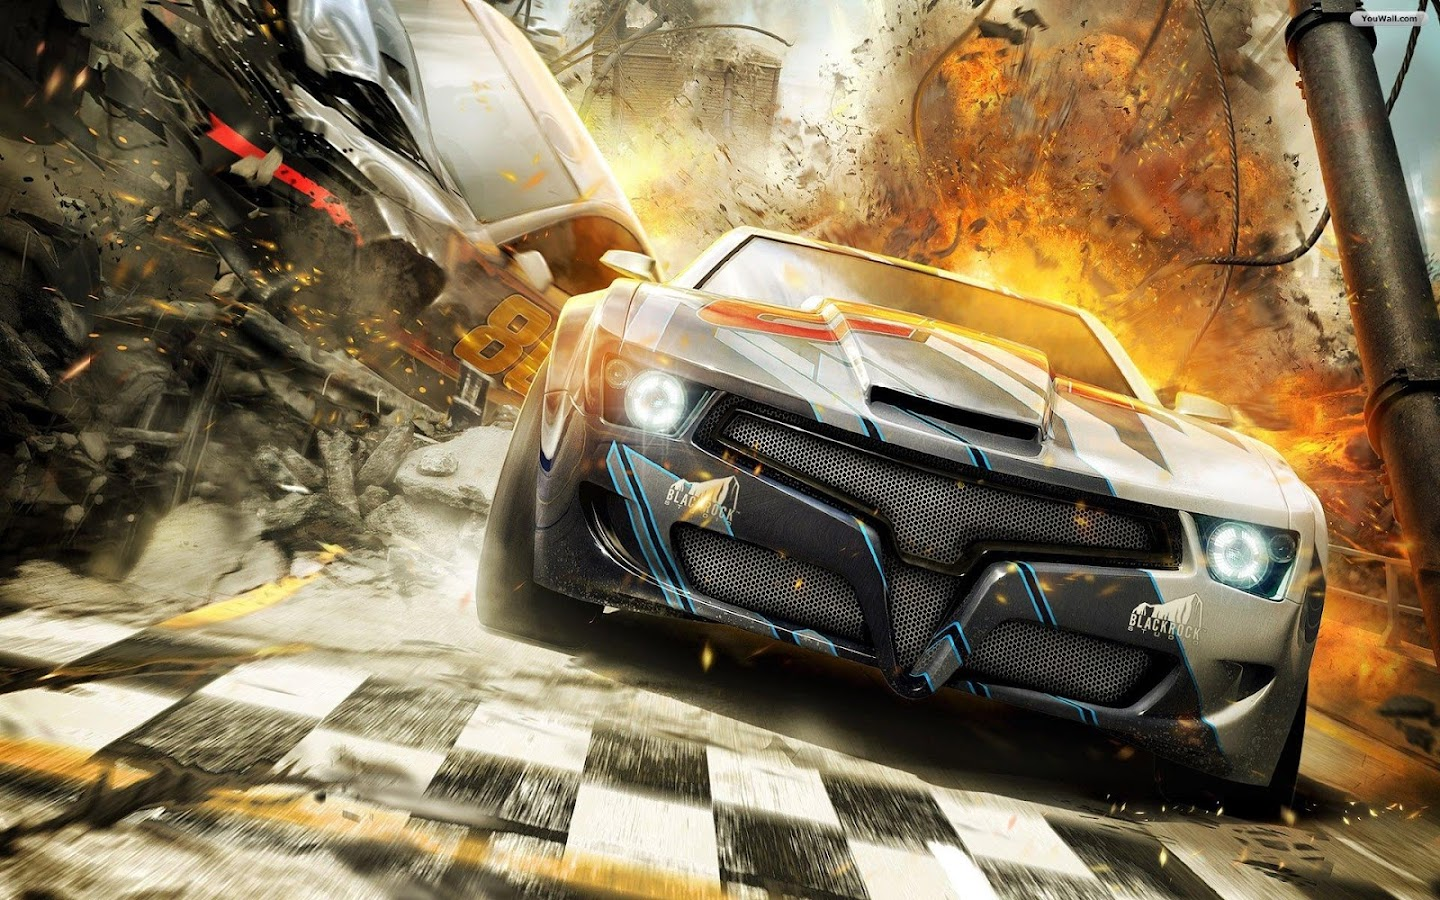 3d racing car wallpaper screenshot - Cool Cars Wallpapers 3d